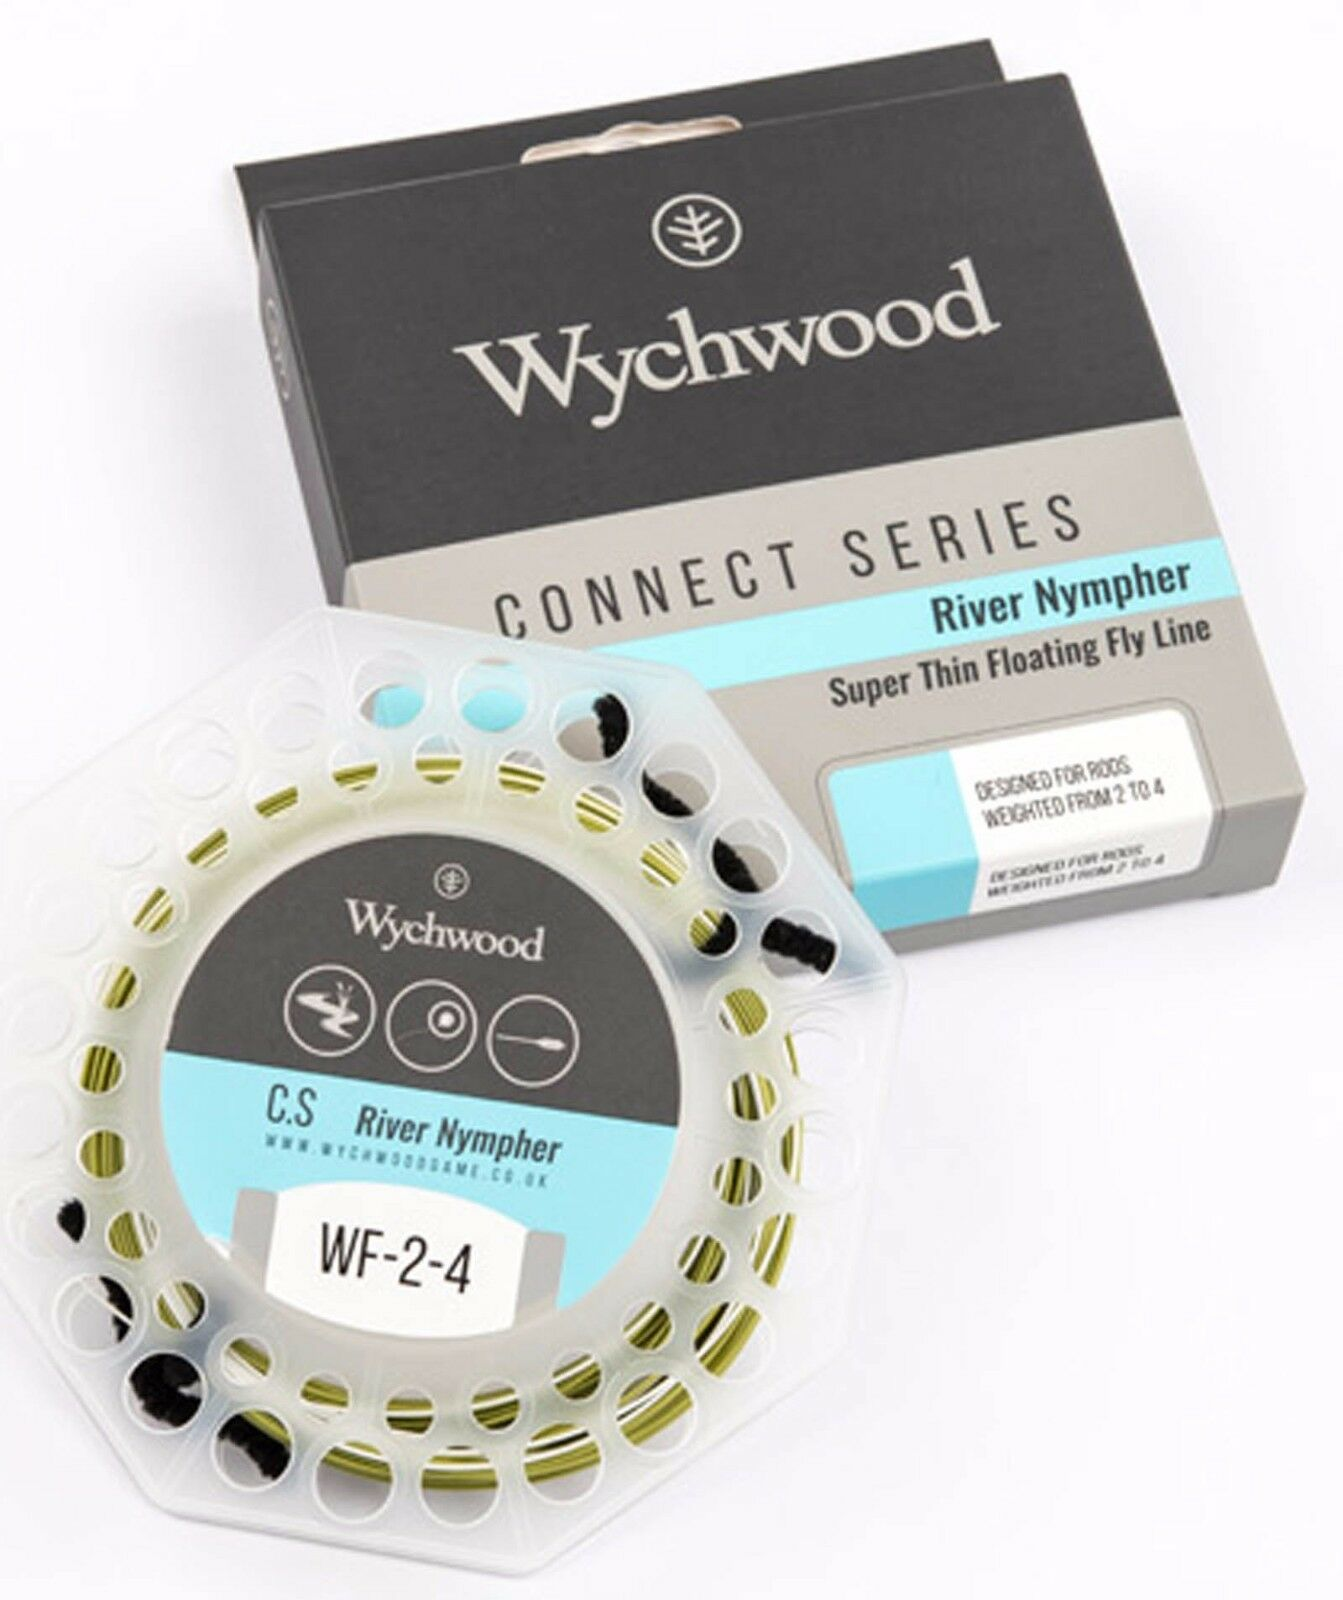 Wychwood Connect Series River Nympher Super Thin  Running Fly Fishing Line  no minimum